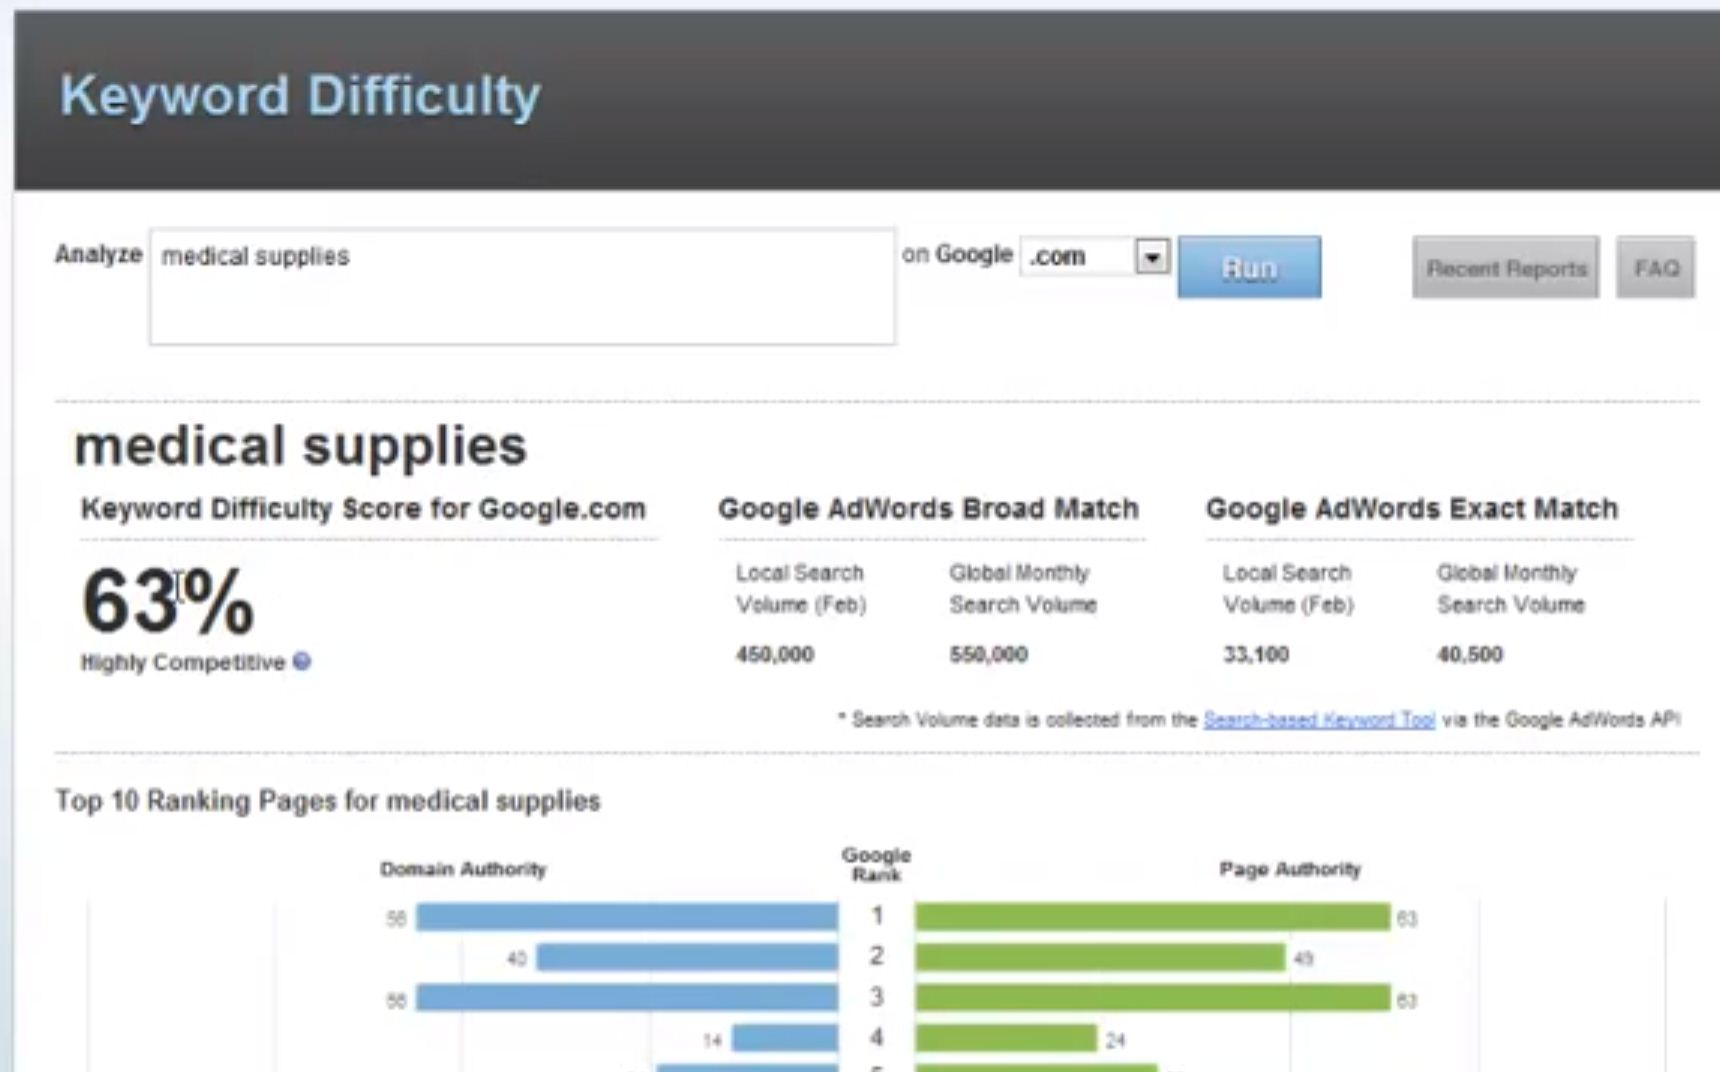 Keyword difficulty can be analyzed and scored